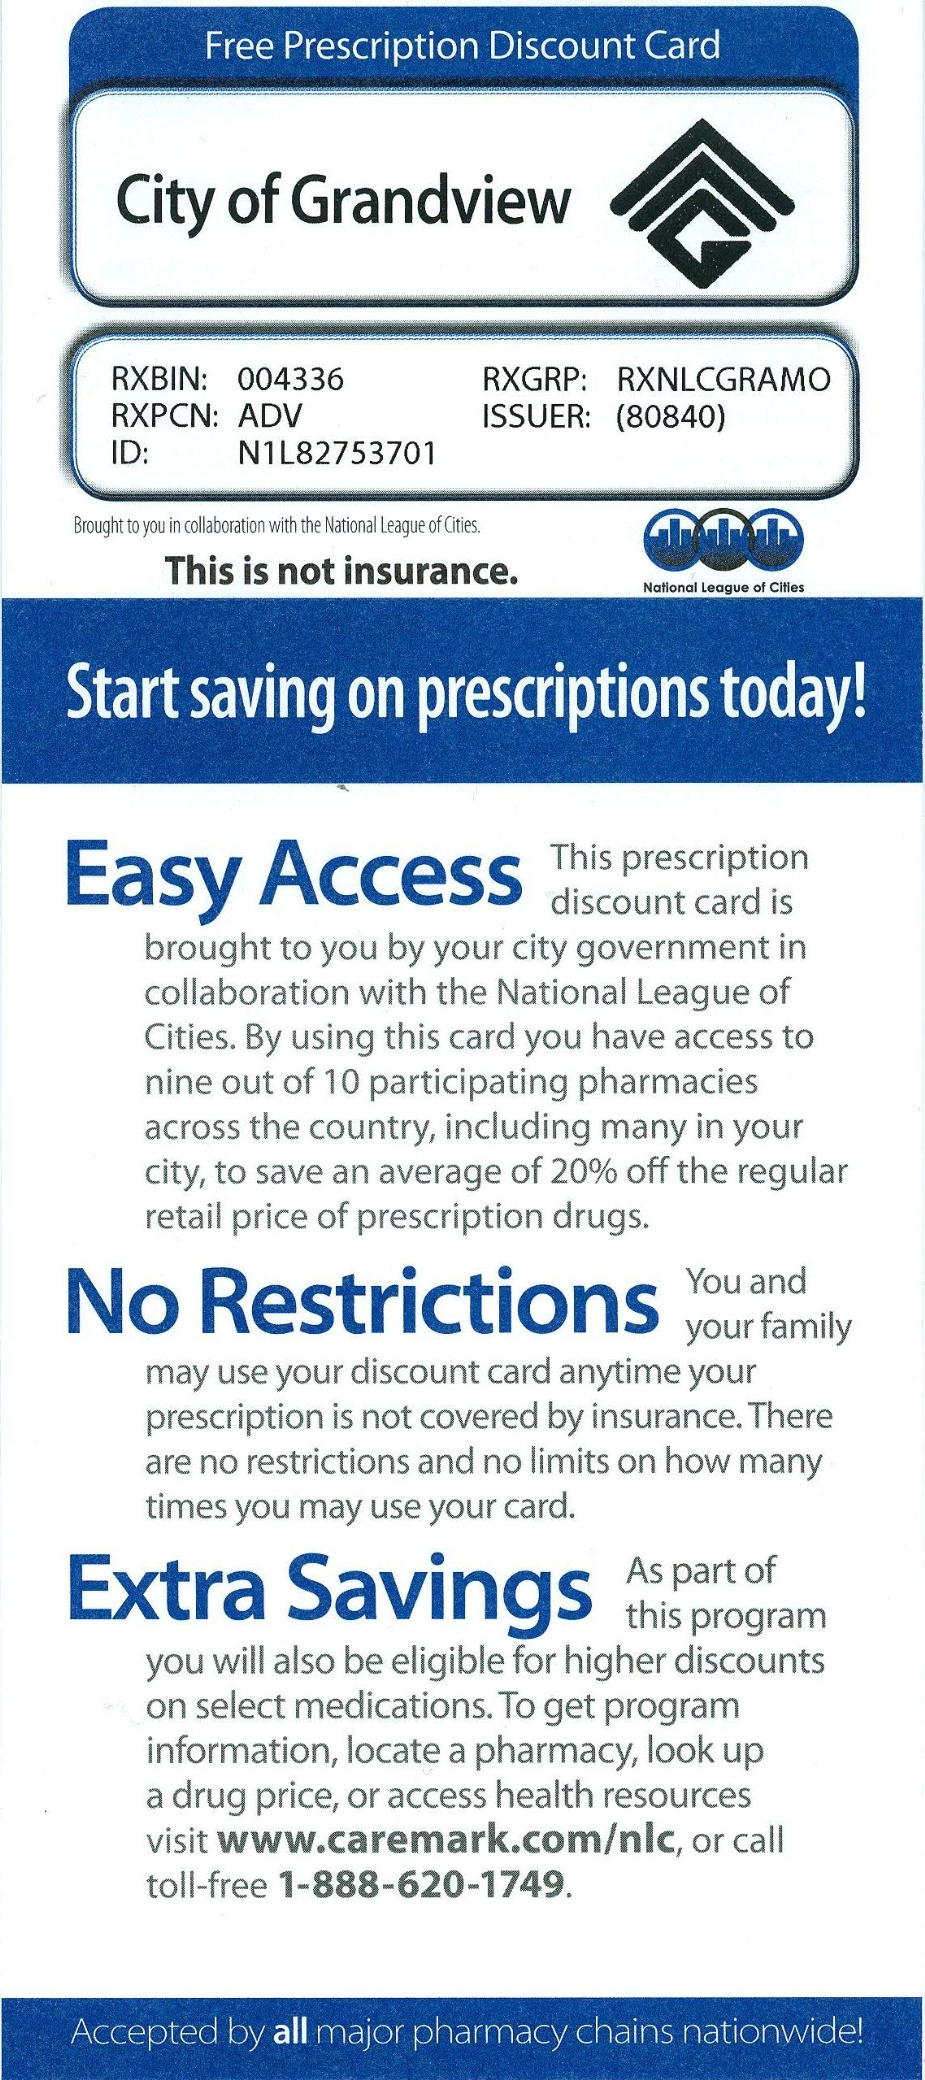 NLC PRESCRIPTION DISCOUNT CARD IS STILL AVAILABLE TO